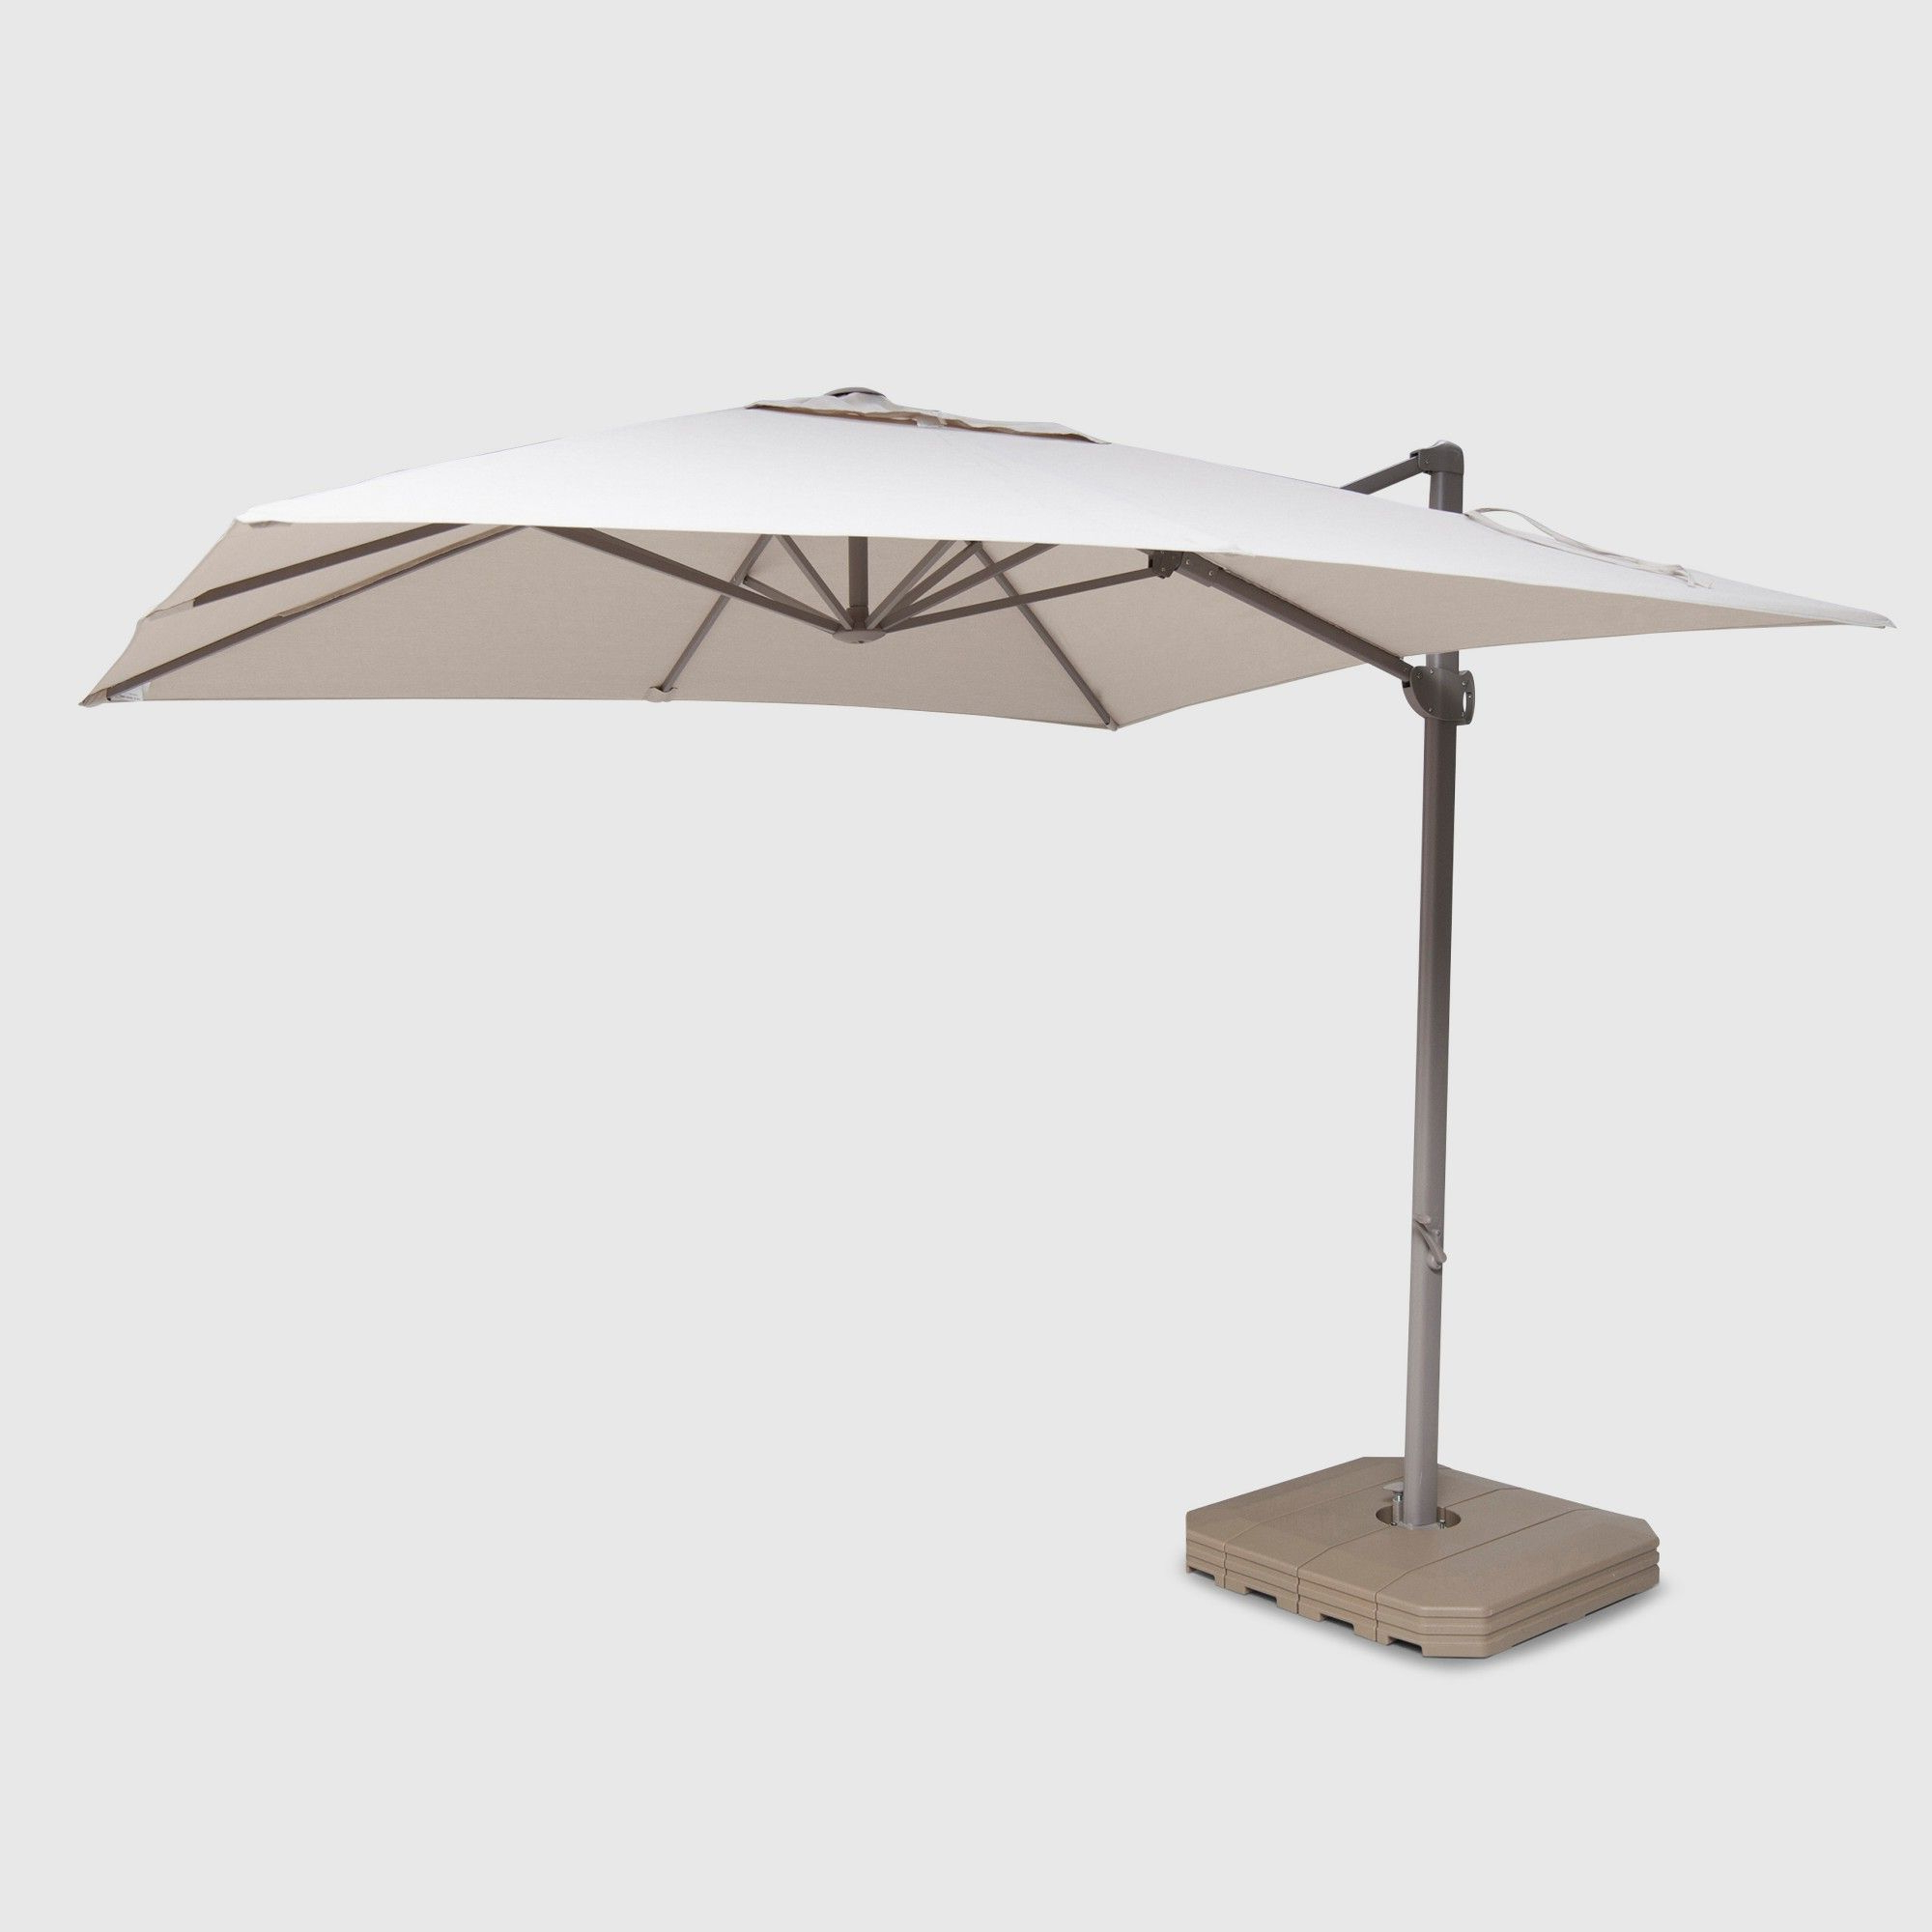 10' Square Offset Patio Umbrella Glacier – Ash Pole – Project 62 In With 2020 Gemmenne Square Cantilever Umbrellas (Gallery 7 of 20)